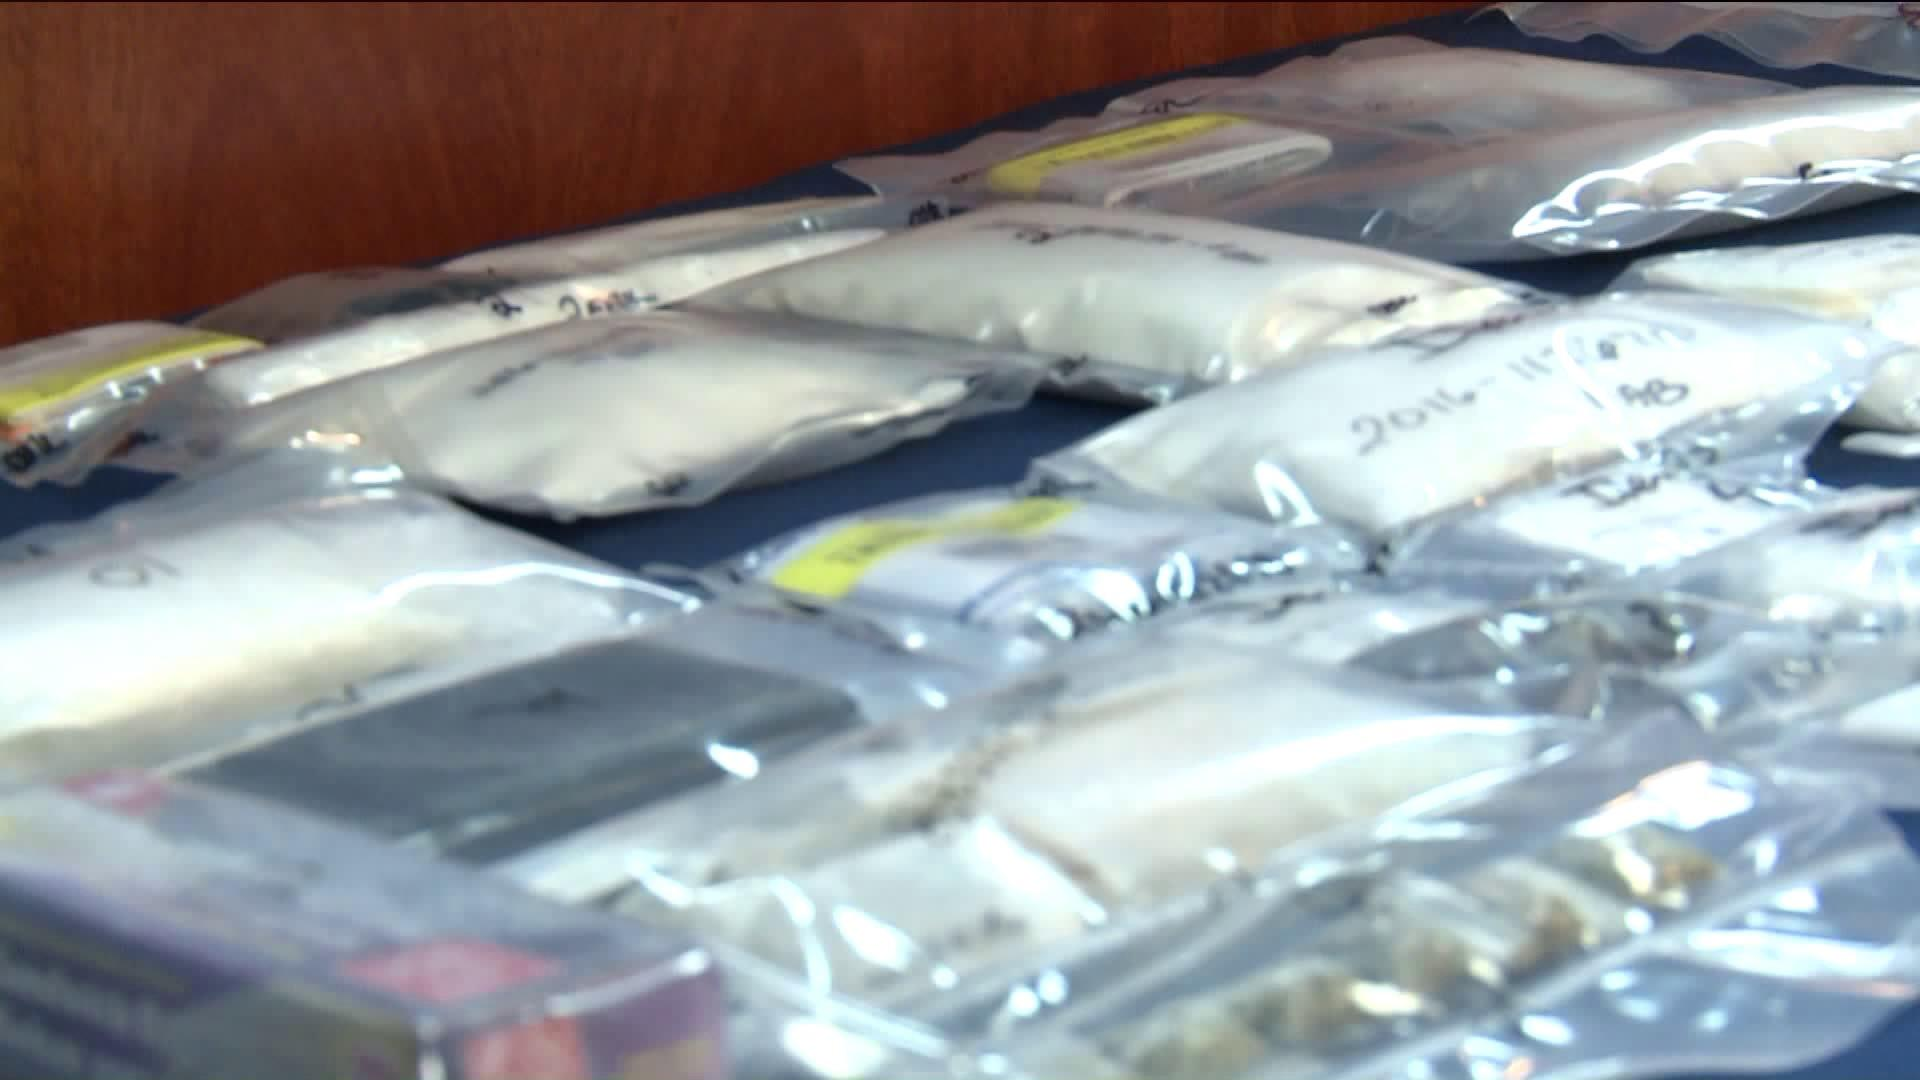 34 Busted in NYC-Based Drug Ring Takedown